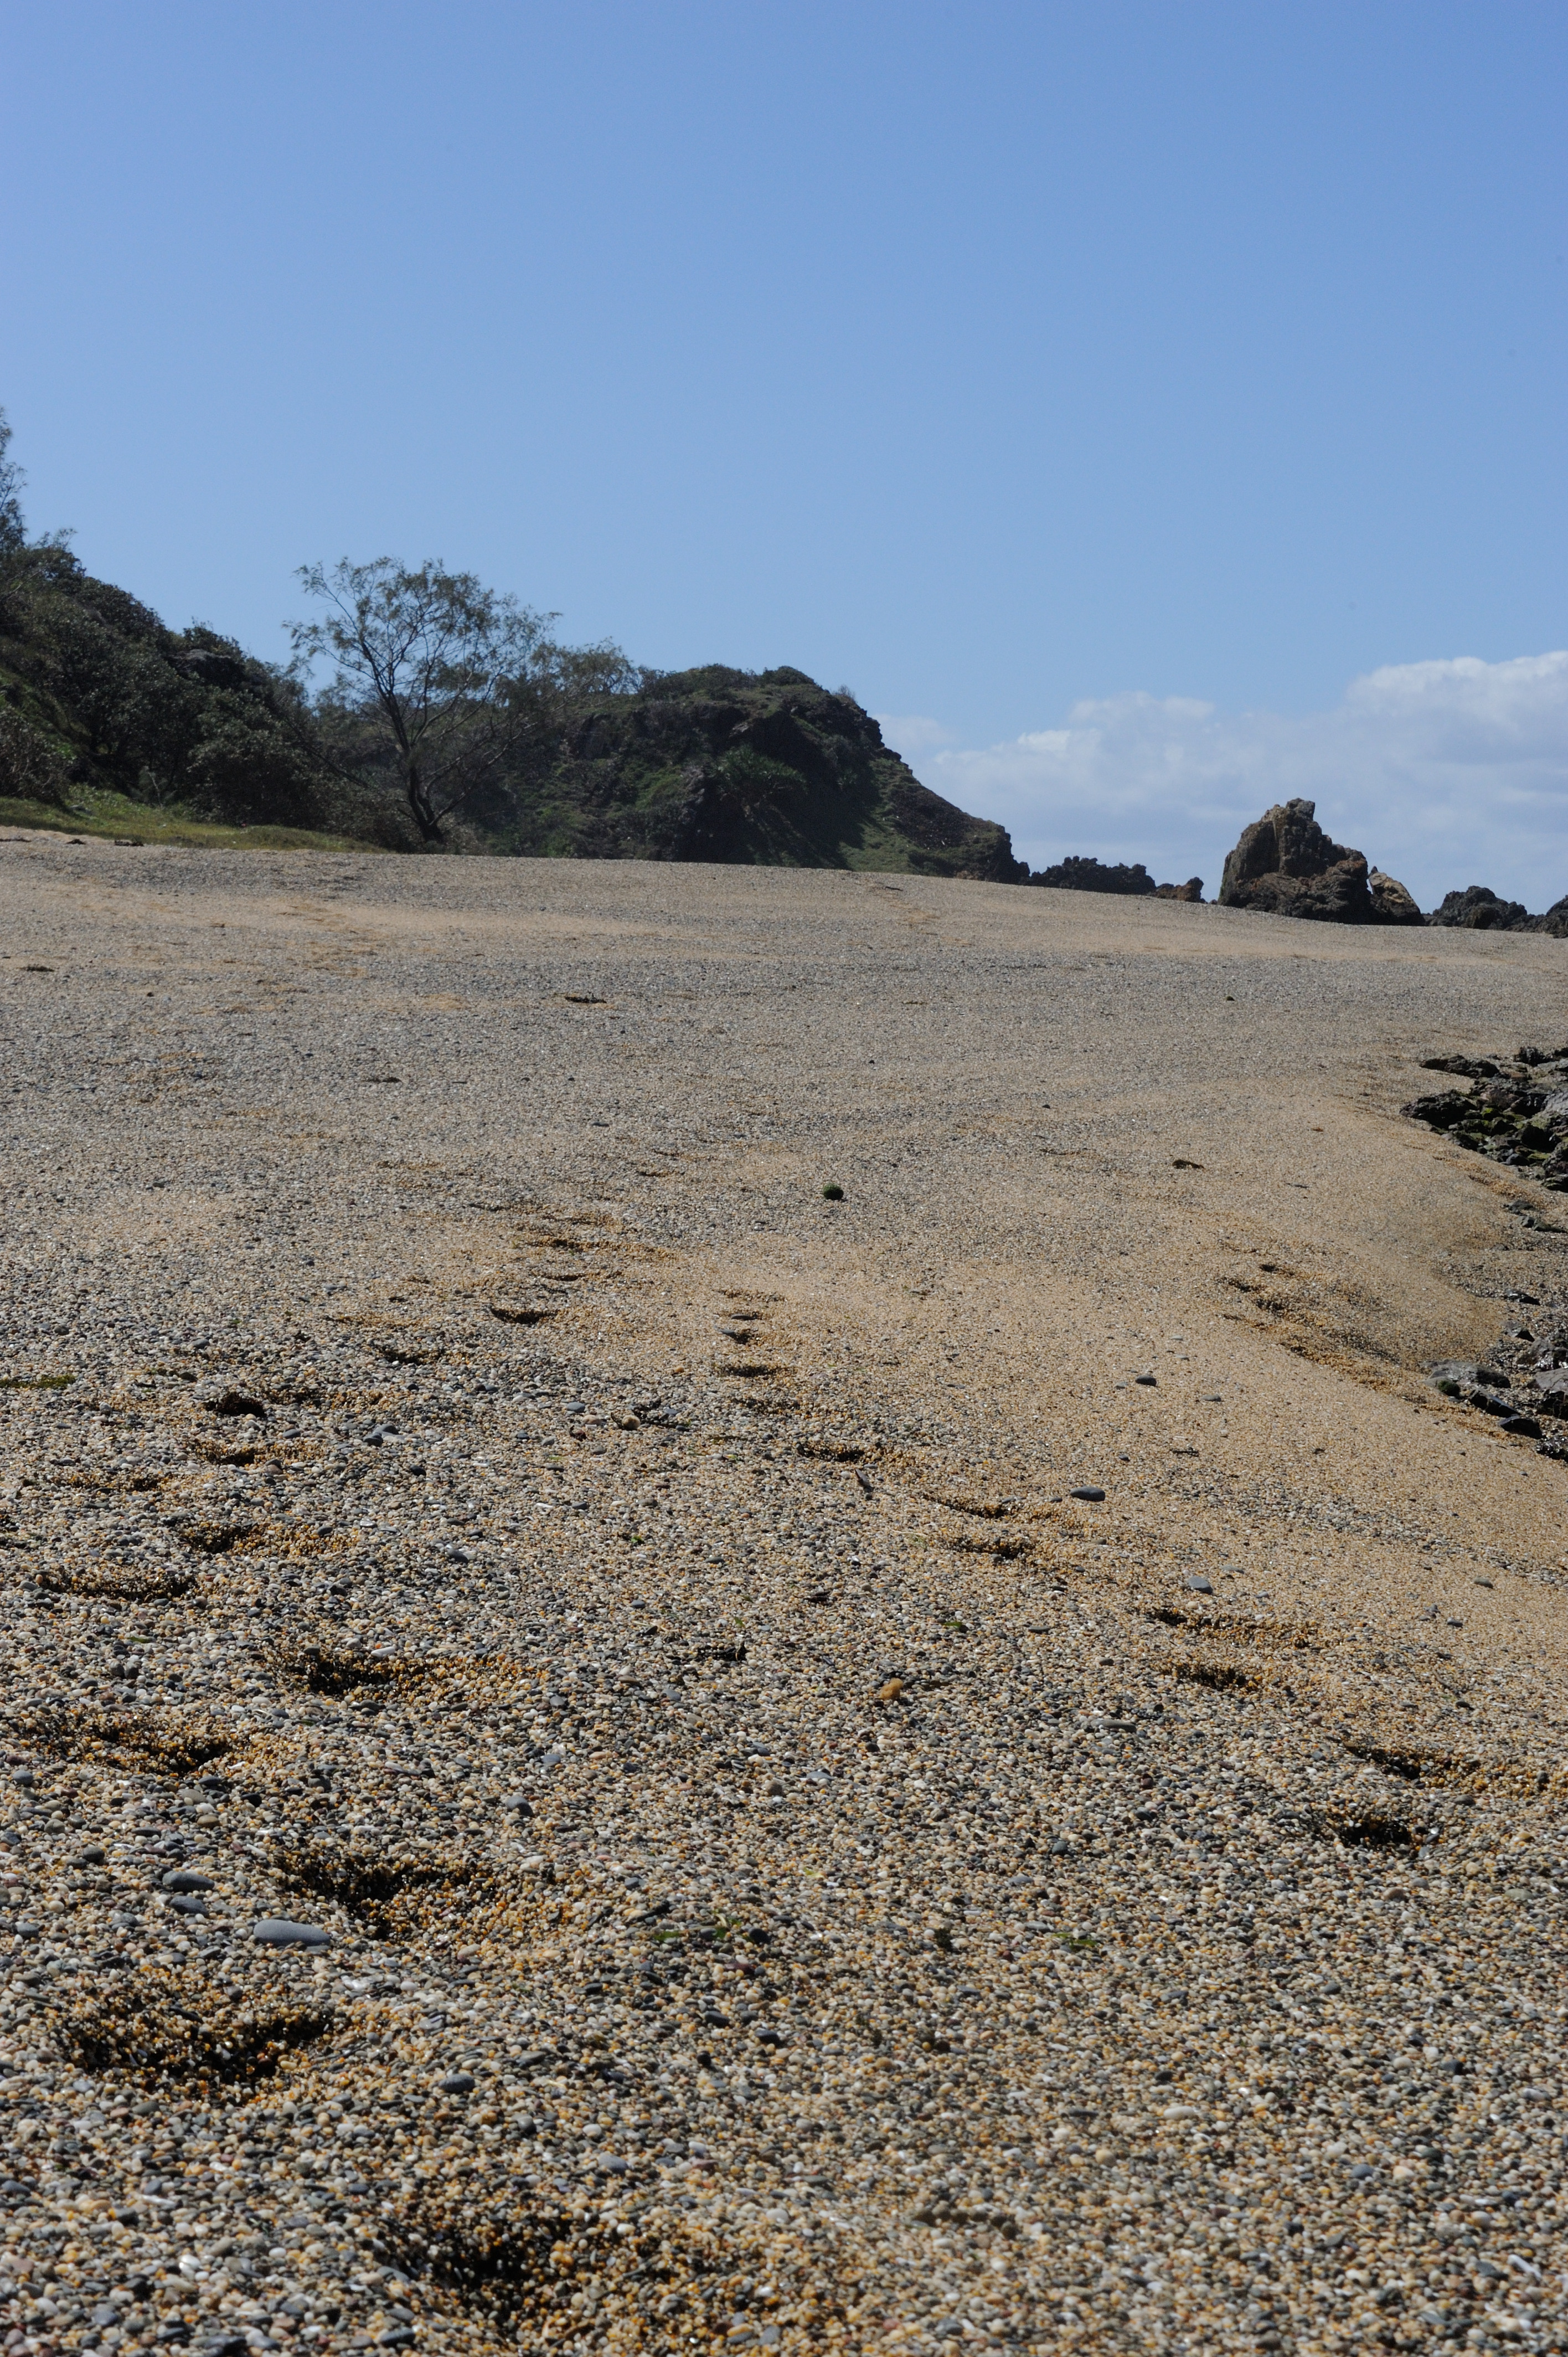 Pebble Beach - Sandon NSW - Yuraygir NP